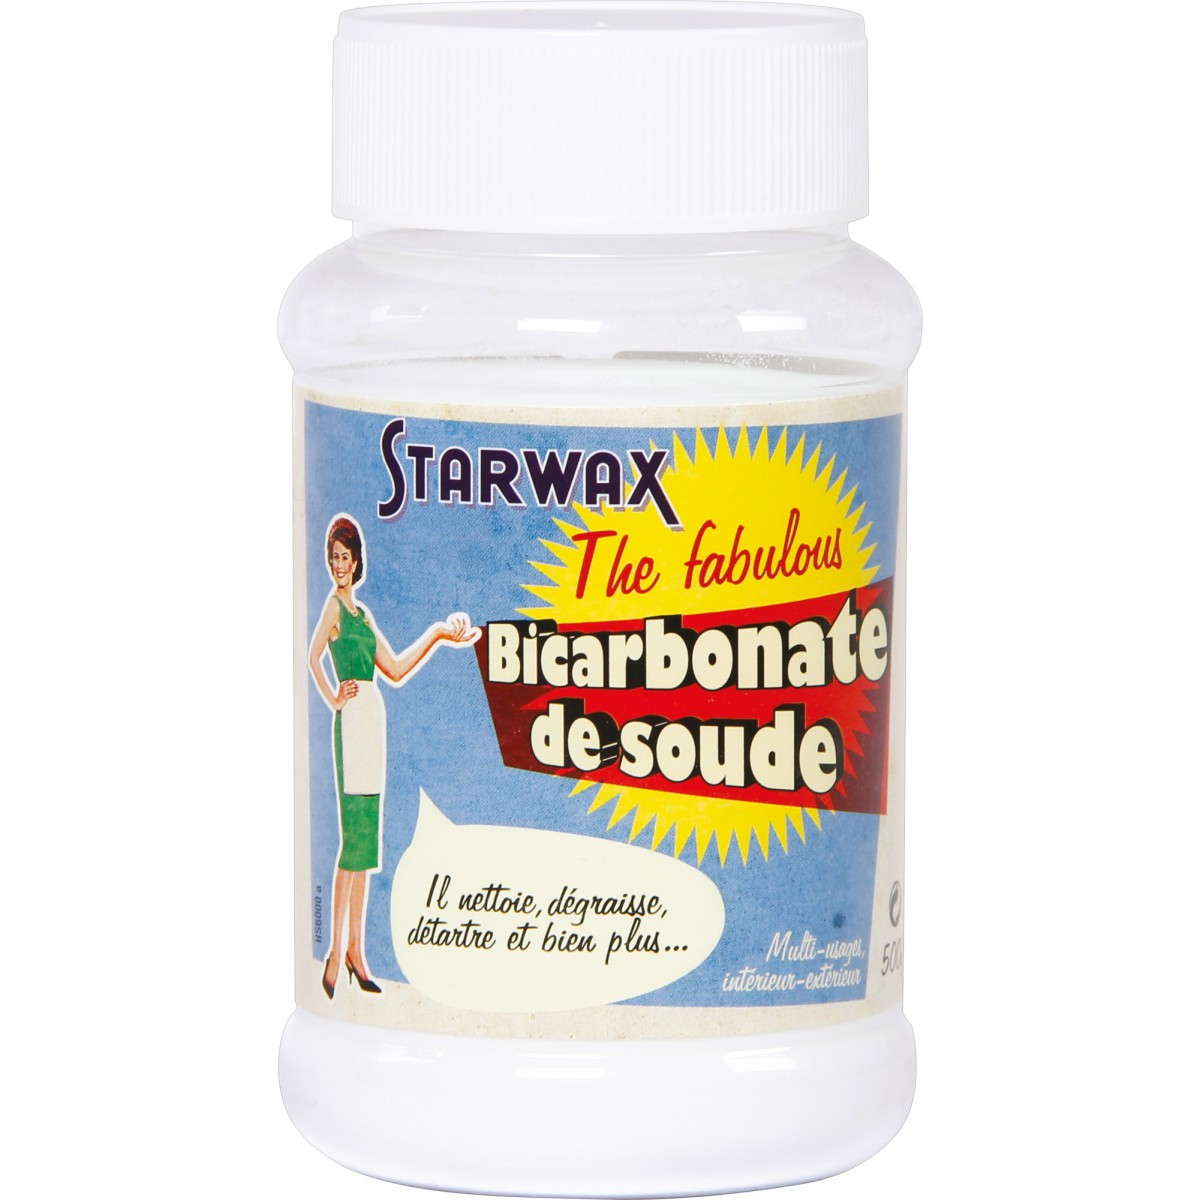 bicarbonate de soude starwax the fabulous 500 g de bicarbonate de soude. Black Bedroom Furniture Sets. Home Design Ideas